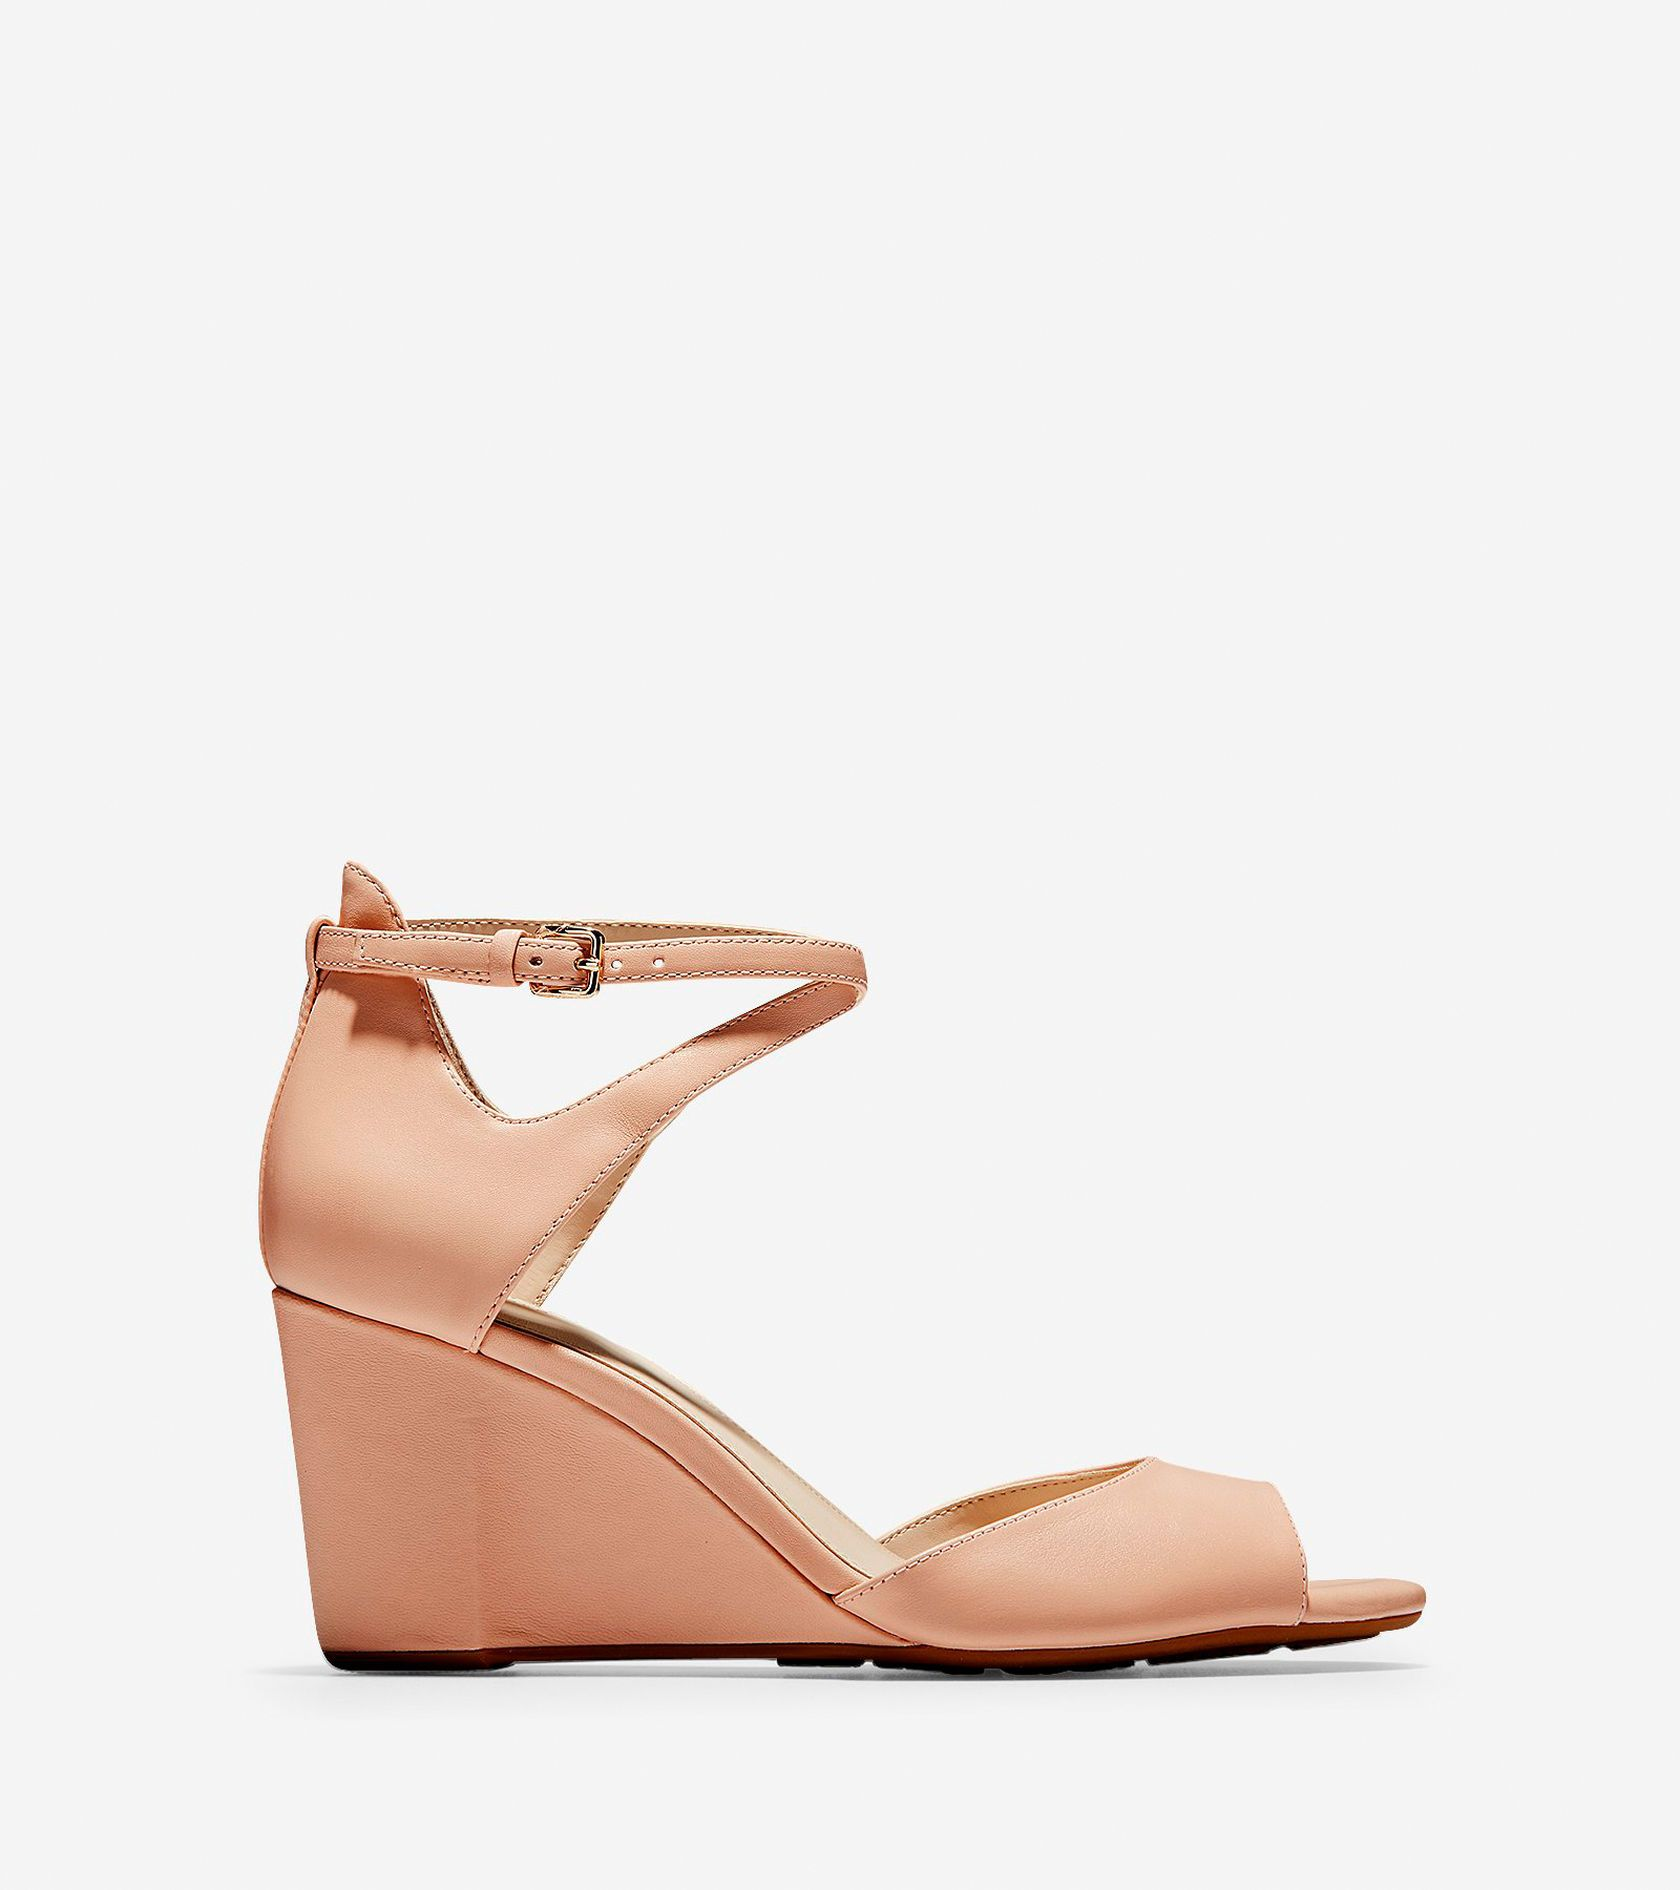 193f4373e Women's Sadie Open Toe Wedge Sandals 75MM in Mahogany Rose | Cole Haan